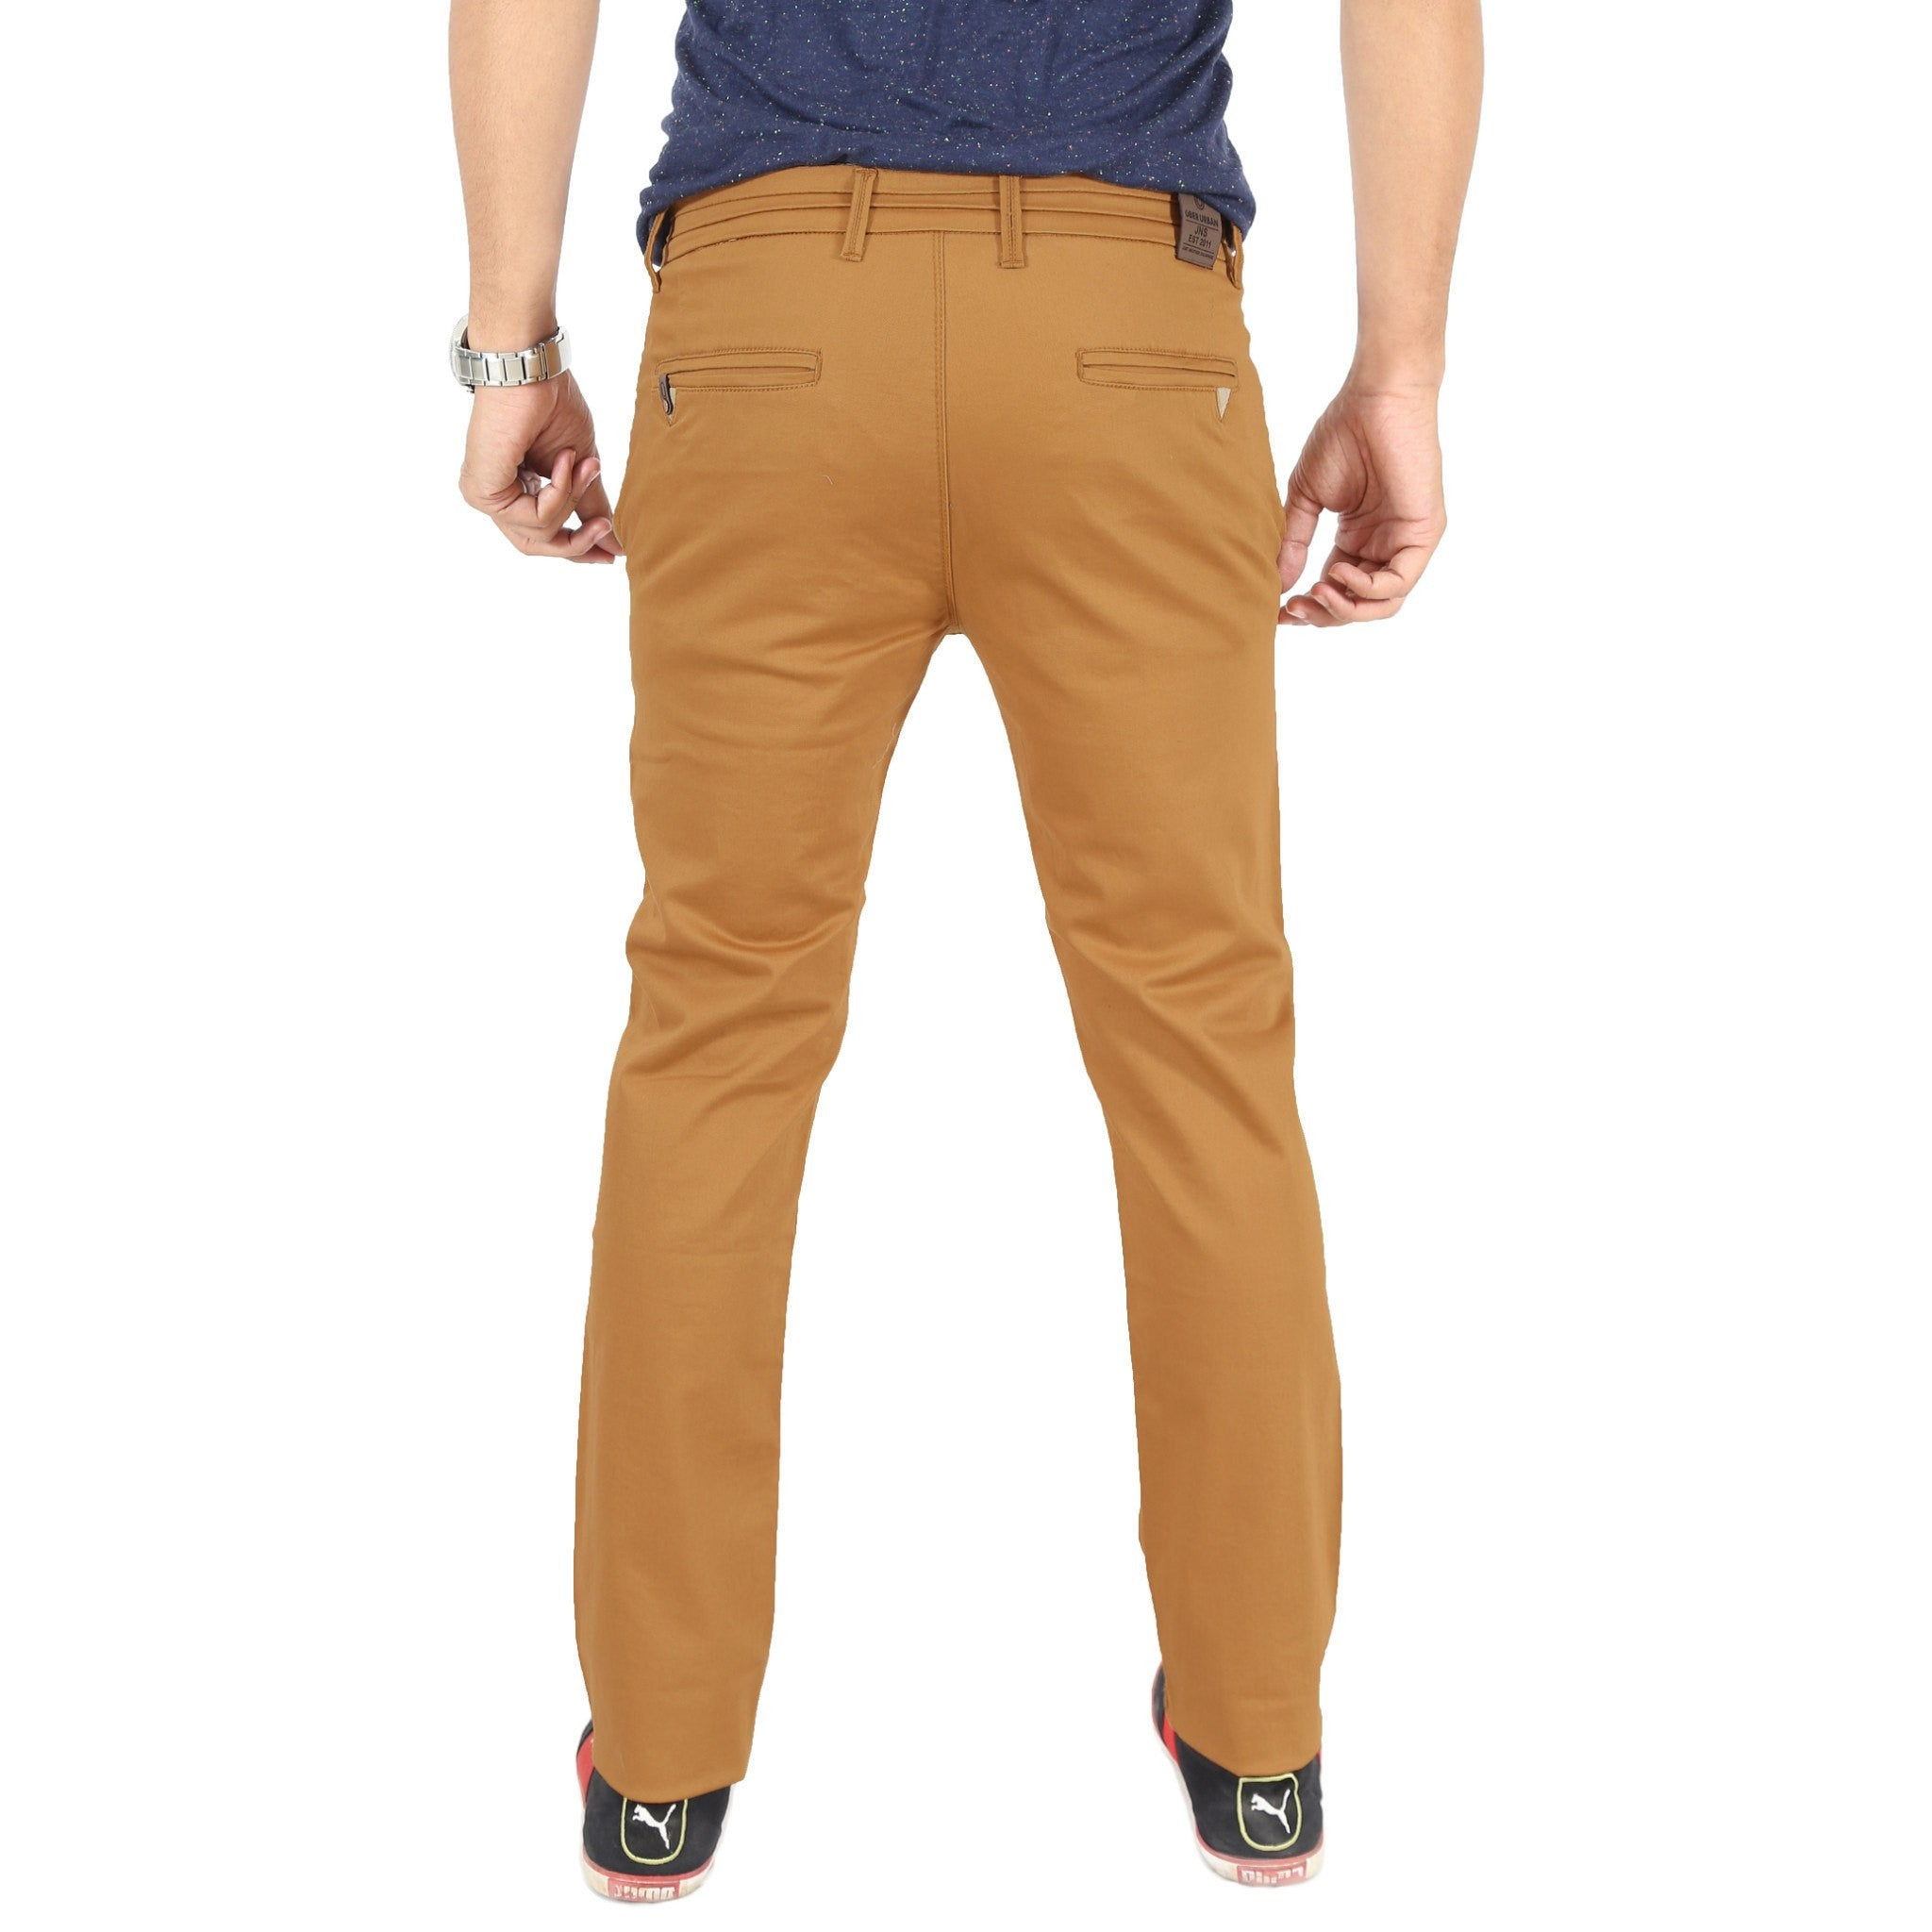 Uber Golden Brown Cotton Twill Elastene Trouser back view